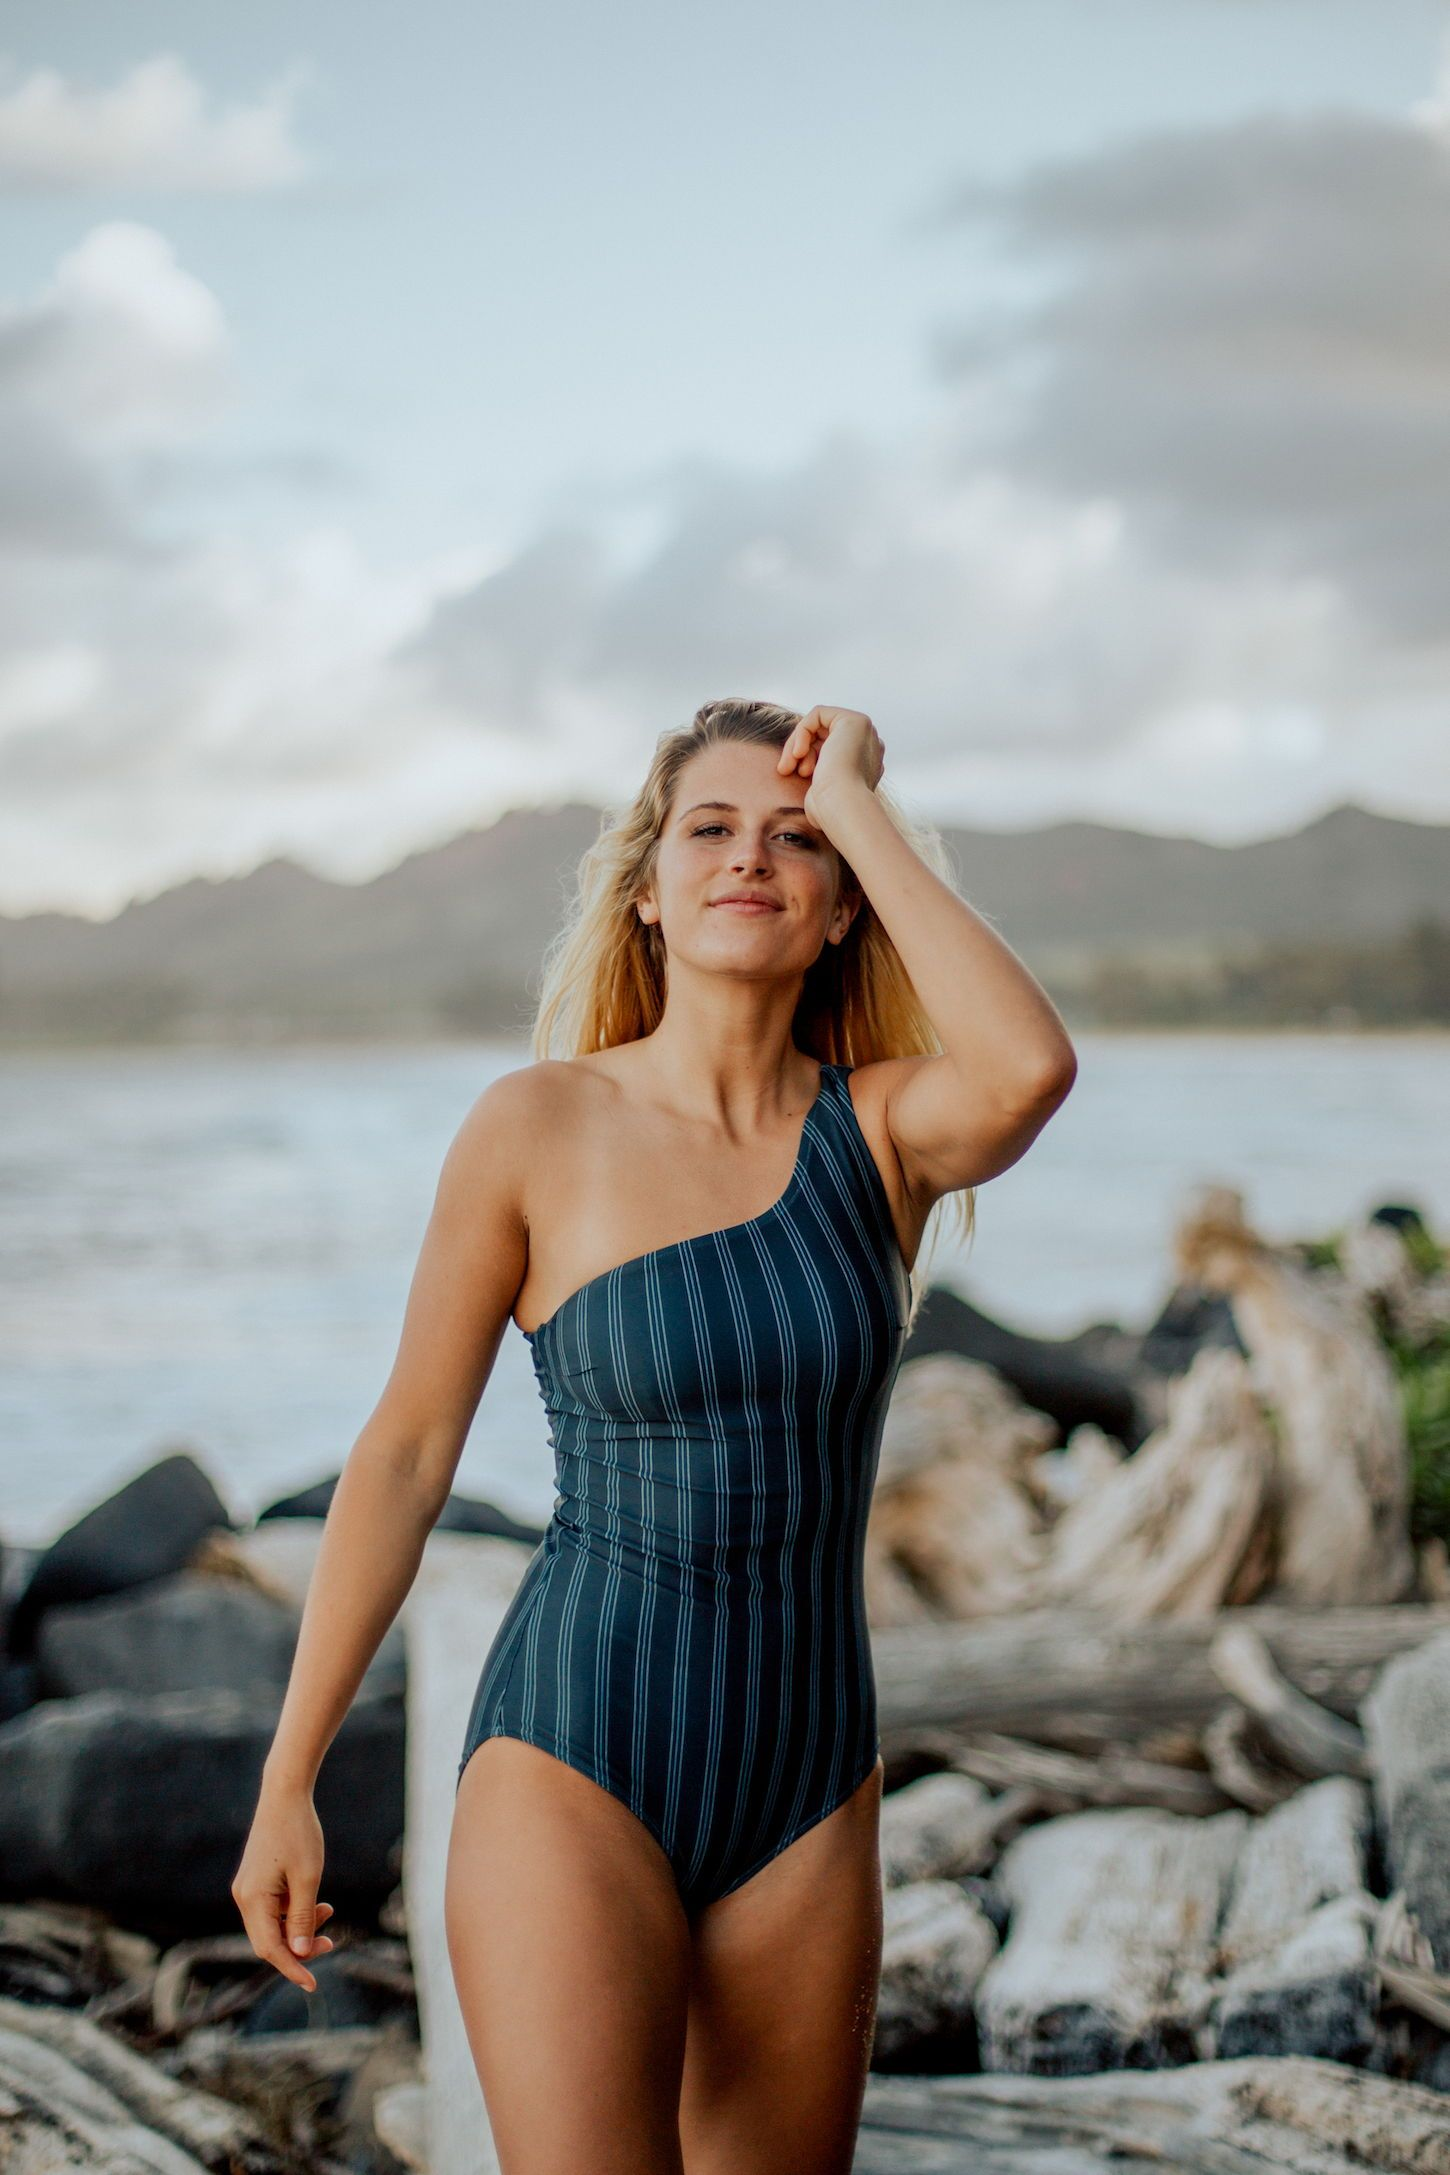 1dfbcf791d Deep Seas Icon One Piece Swimsuit. A classic silhouette that is feminine  and timeless. This favorite One-piece style is navy with vertical  pinstripes ...